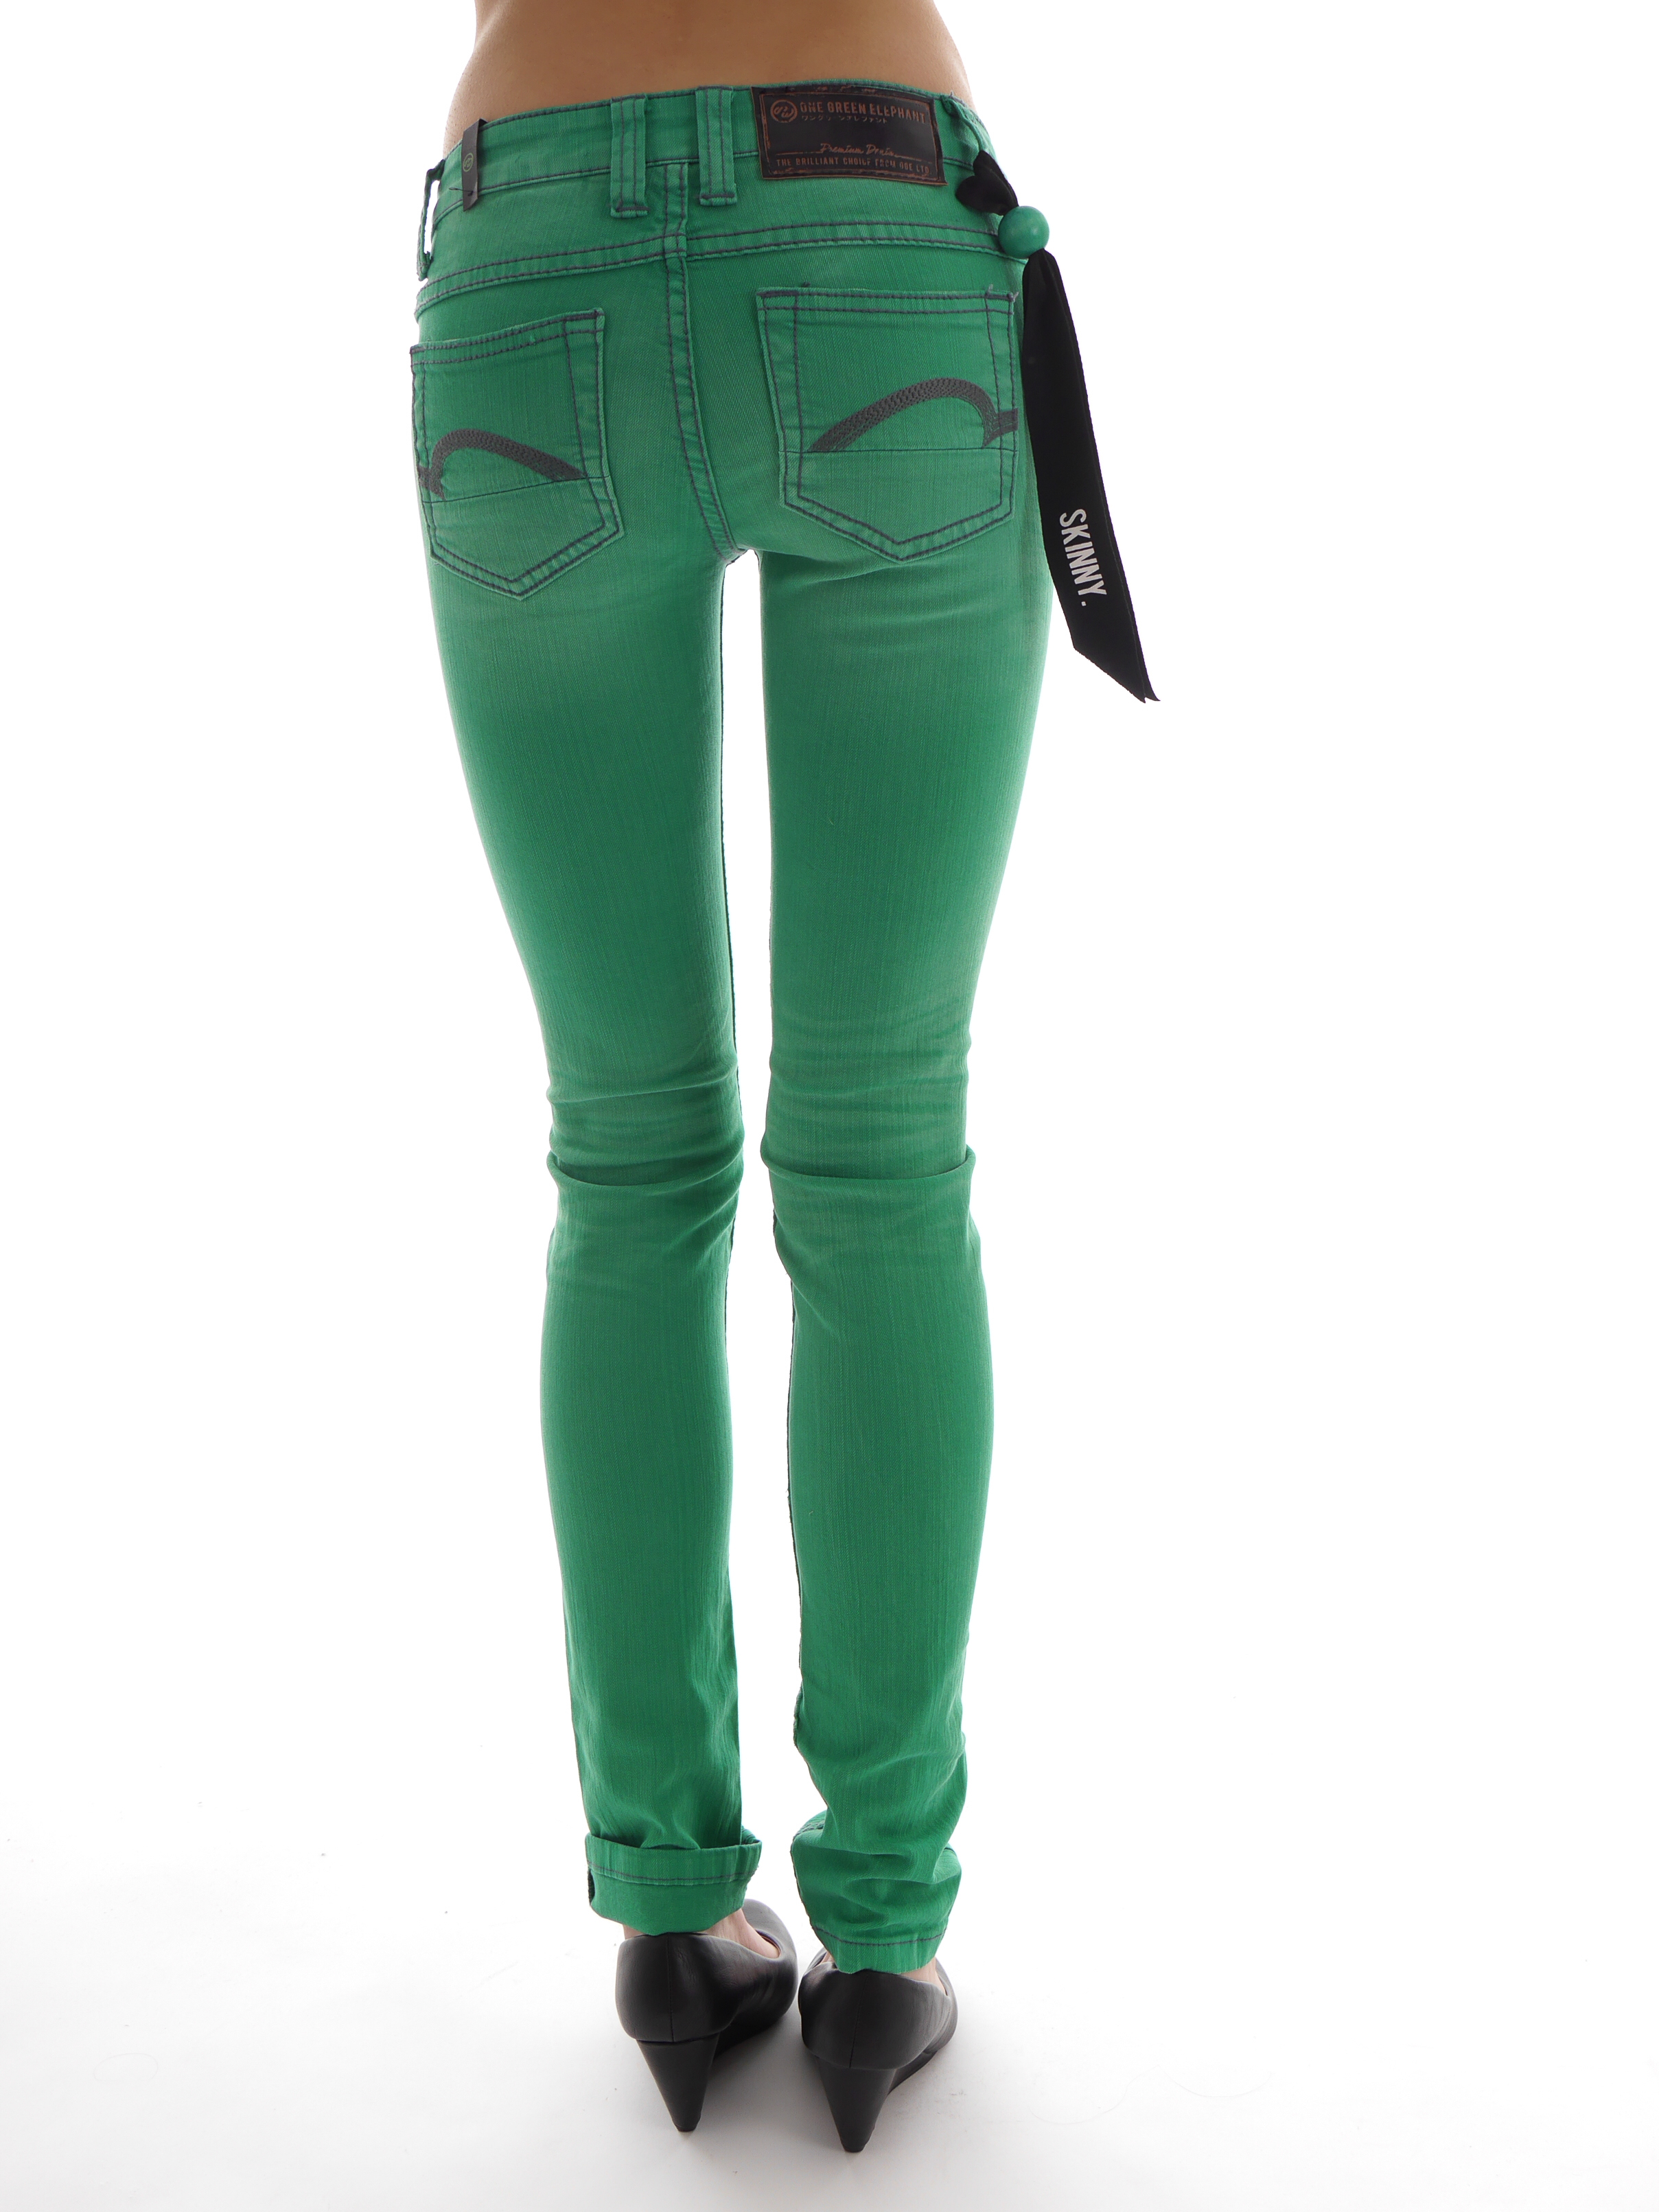 one green elephant jeans trousers memphis o1931 green skinny jeans ebay. Black Bedroom Furniture Sets. Home Design Ideas